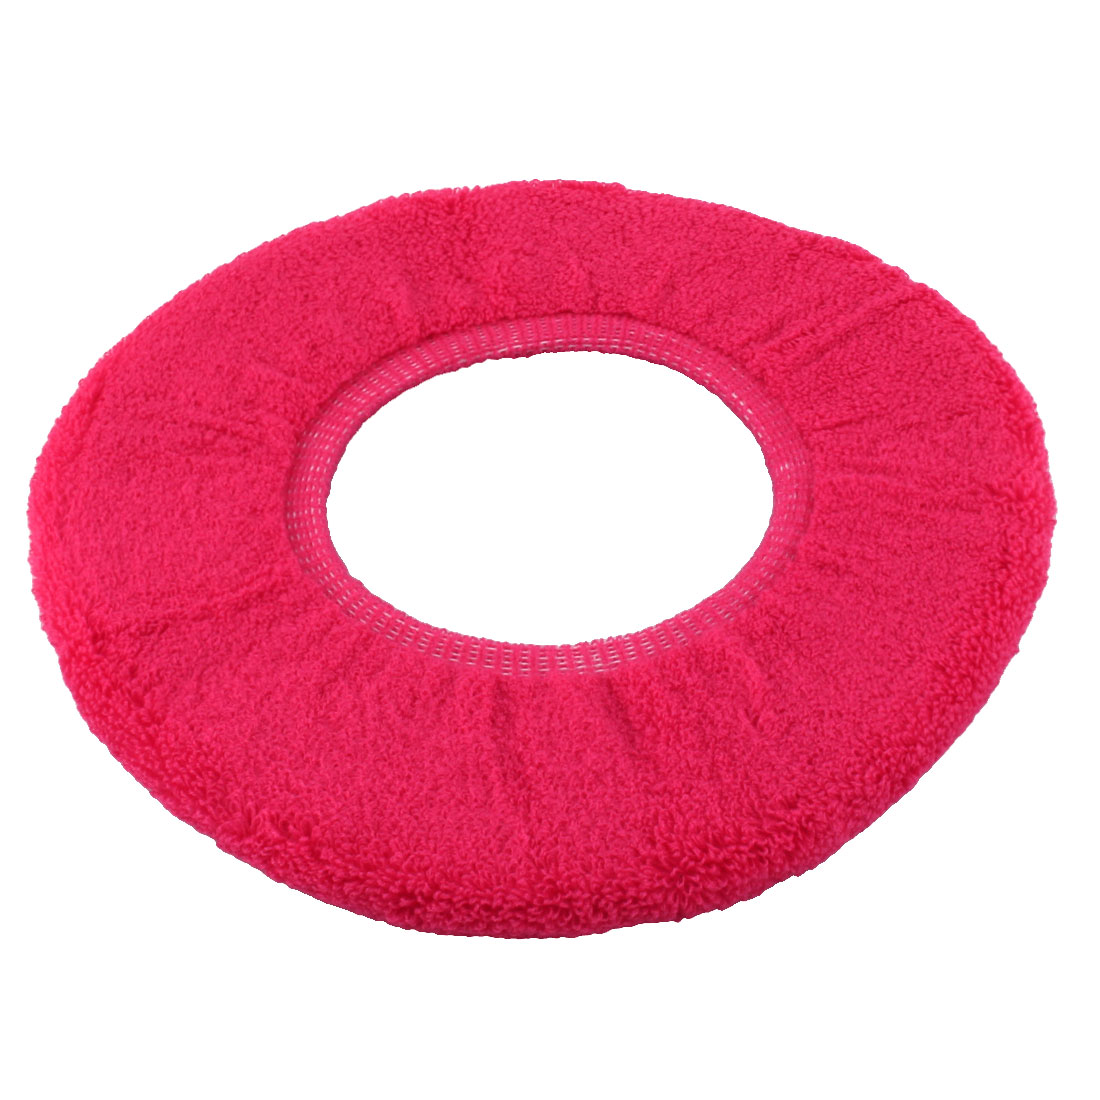 Unique Bargains Bathroom Polyester Fiber Round Closestool Toilet Seat Lid Cover Fuchia